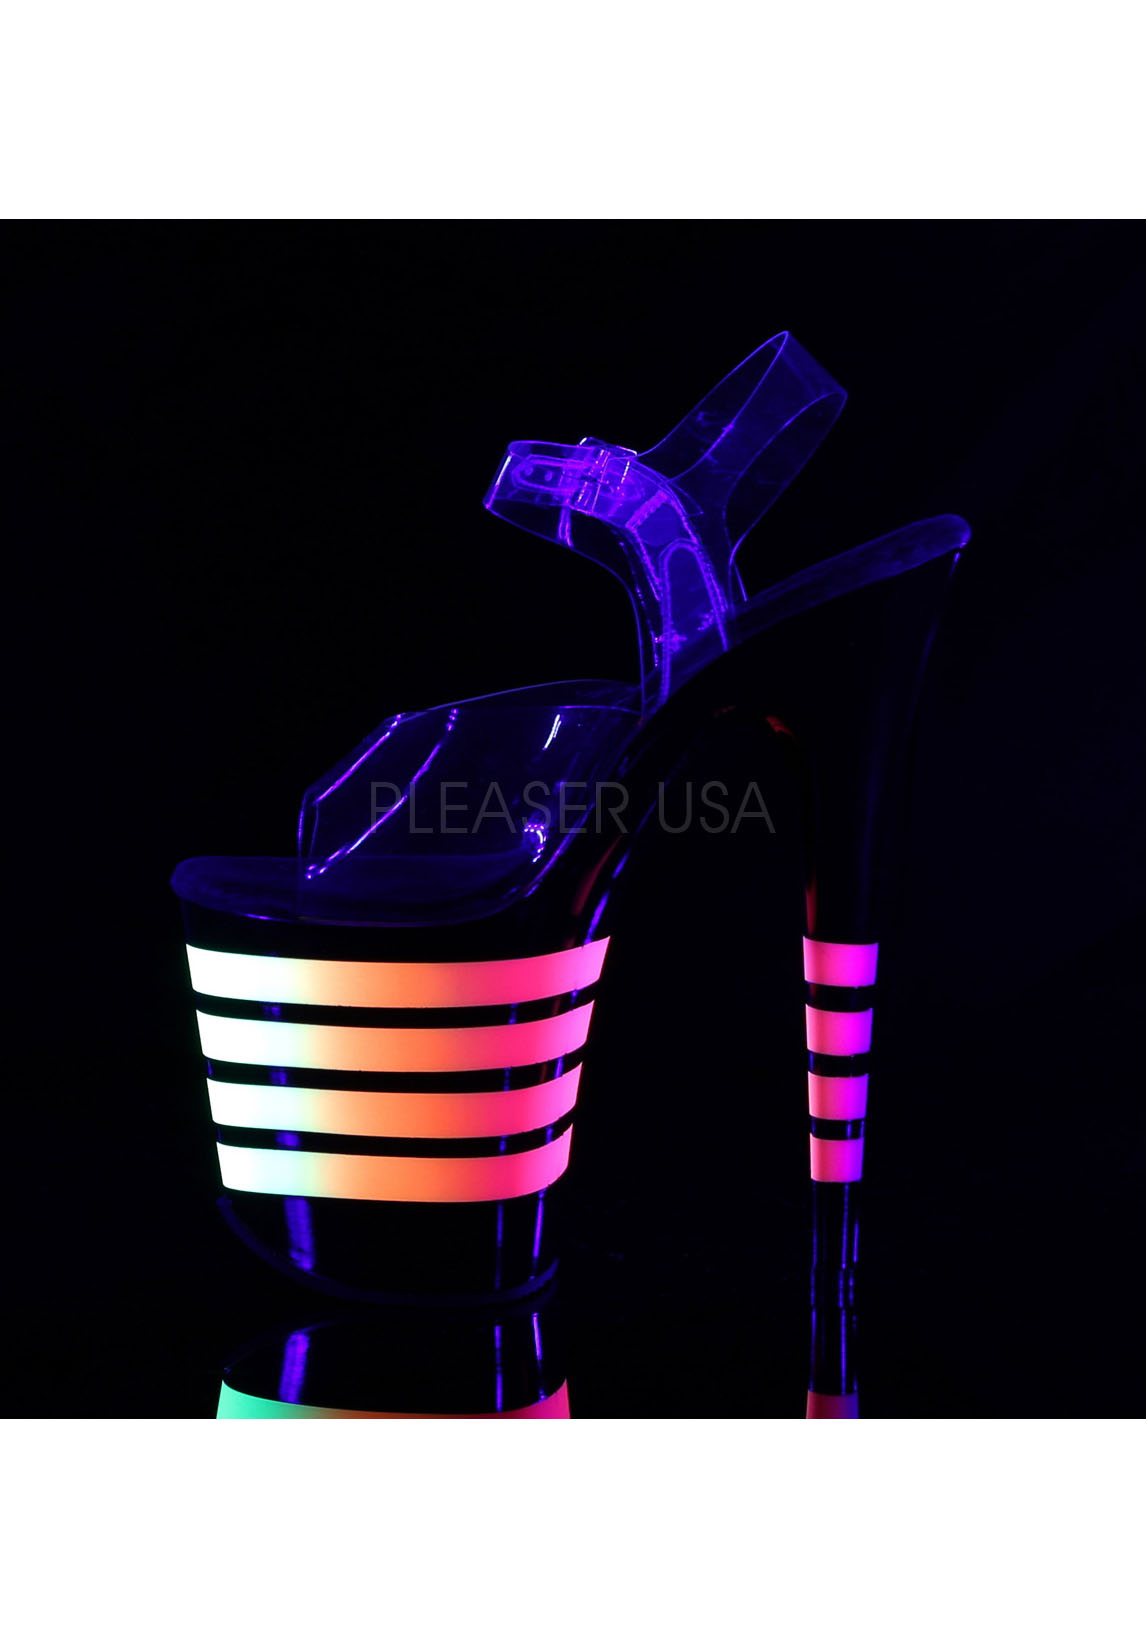 8 Inch Heel, 4 Inch Platform Ankle Strap Sandale With Neon UV Reactive Lines